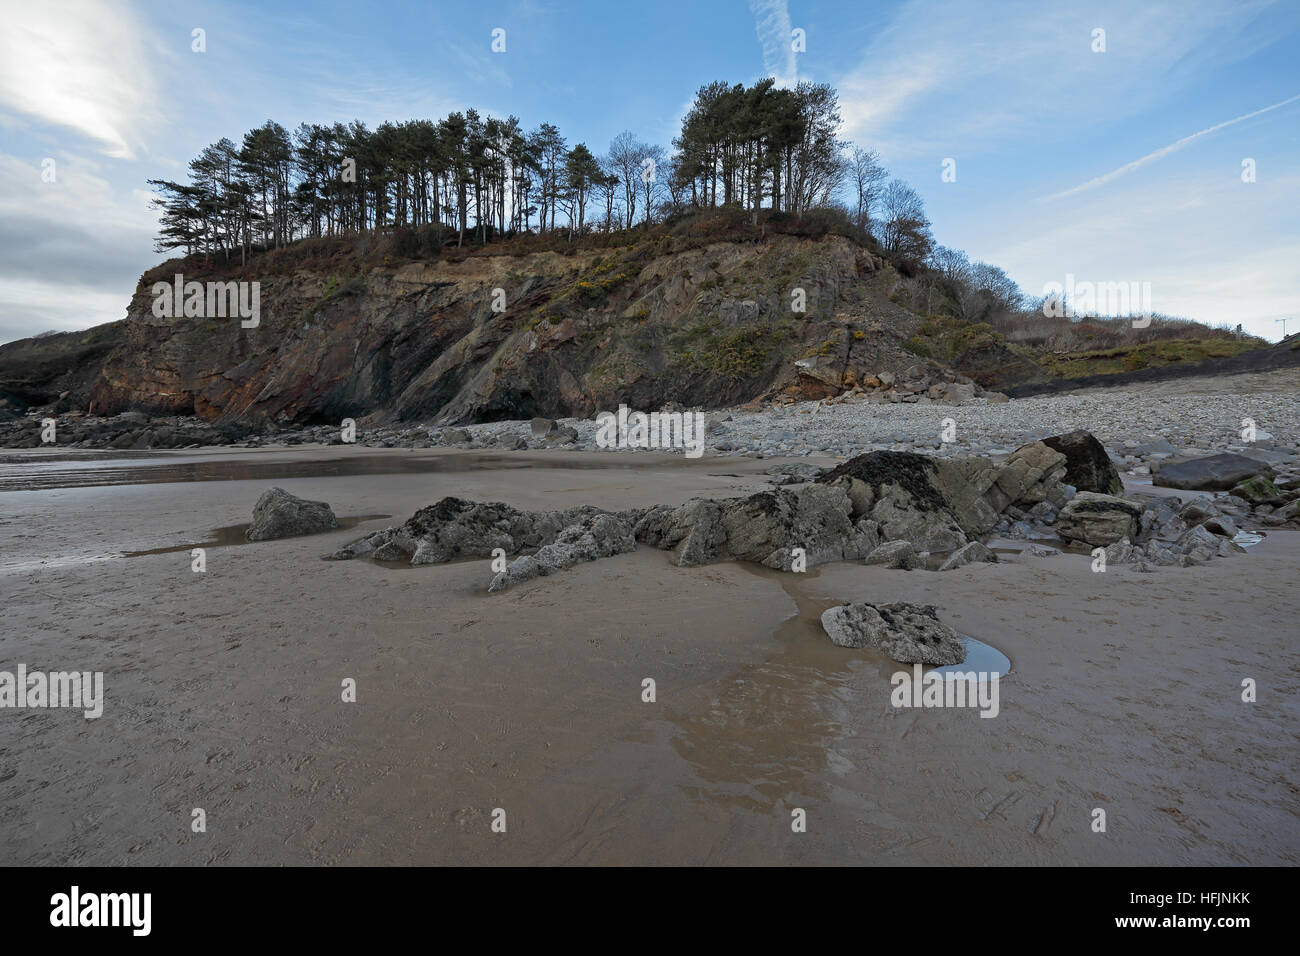 From the beach looking towards a rocky cliff with mature fir trees on top and banks sloping down on either side - Stock Image